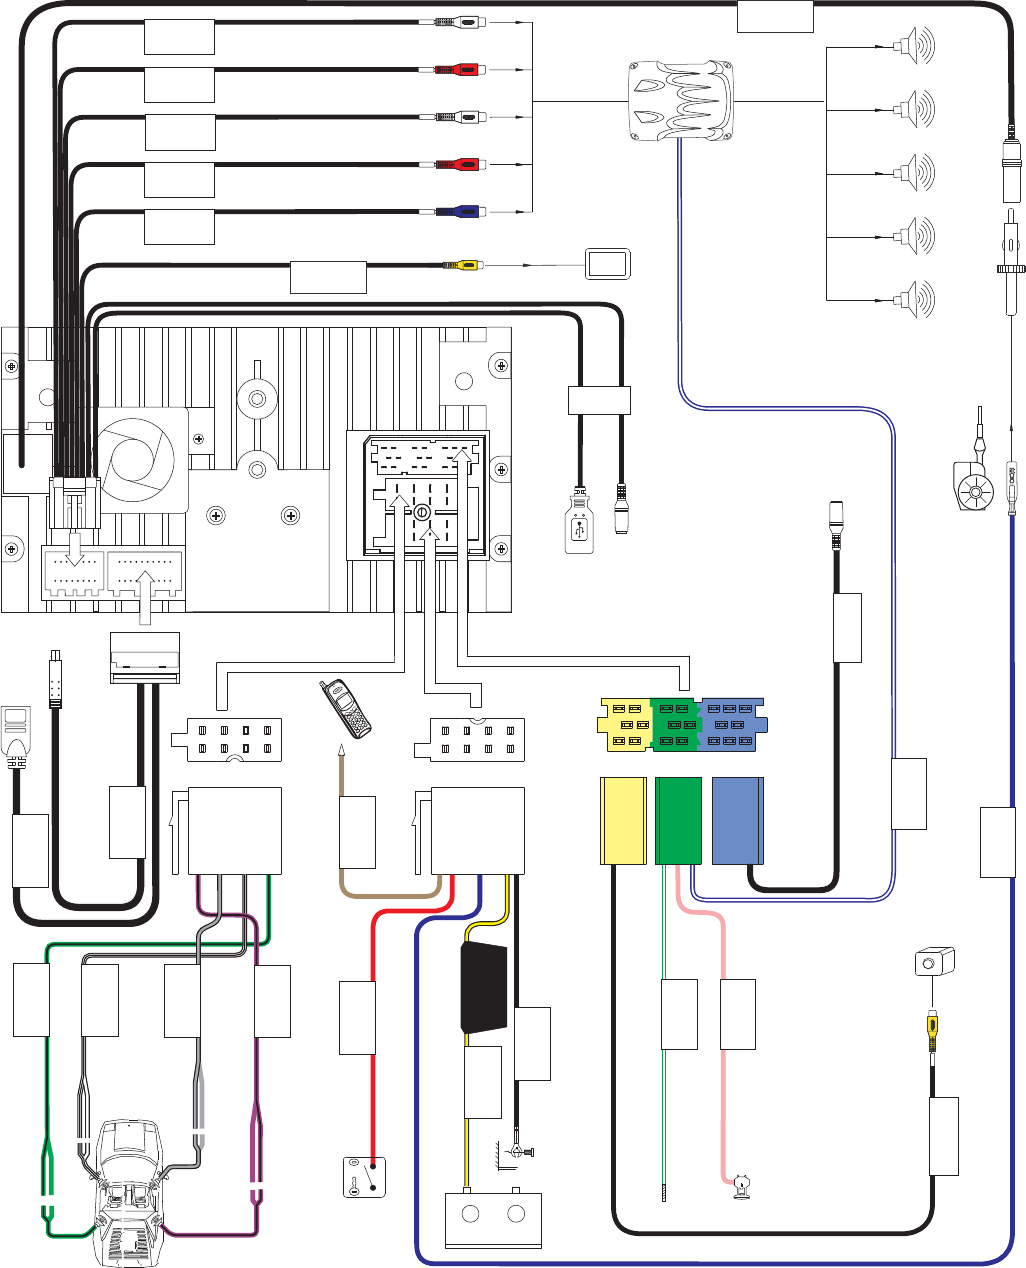 34fbcac4 7bef 4eb8 b34c 690a937048d0 bg4 page 4 of jensen car video system vm9224 user guide jensen phase linear uv9 wiring diagram at bakdesigns.co